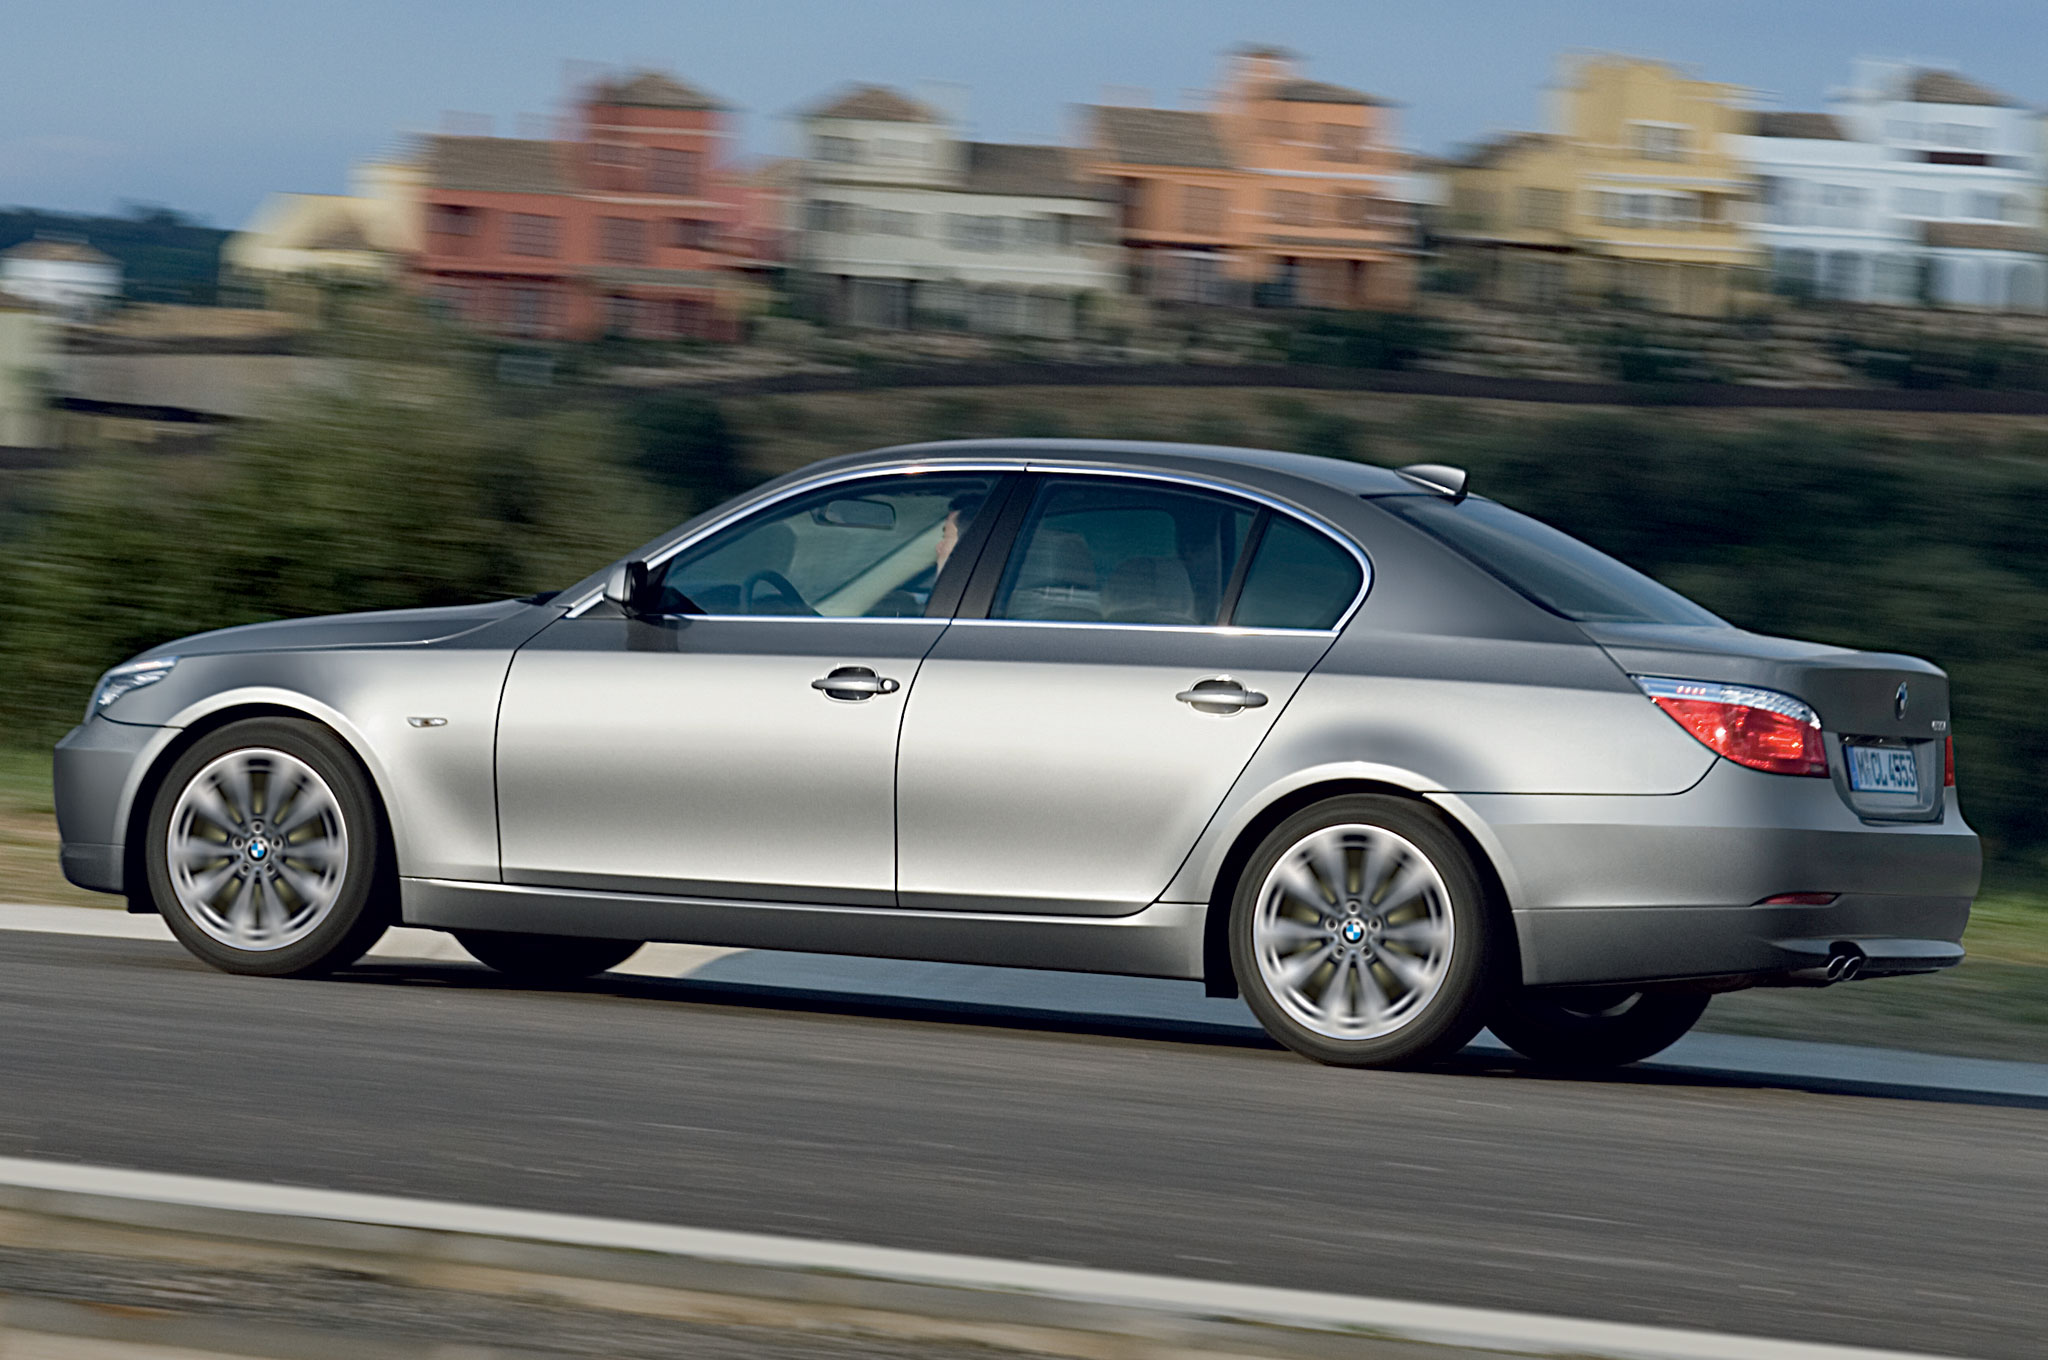 2010 bmw 5 series information and photos momentcar. Black Bedroom Furniture Sets. Home Design Ideas